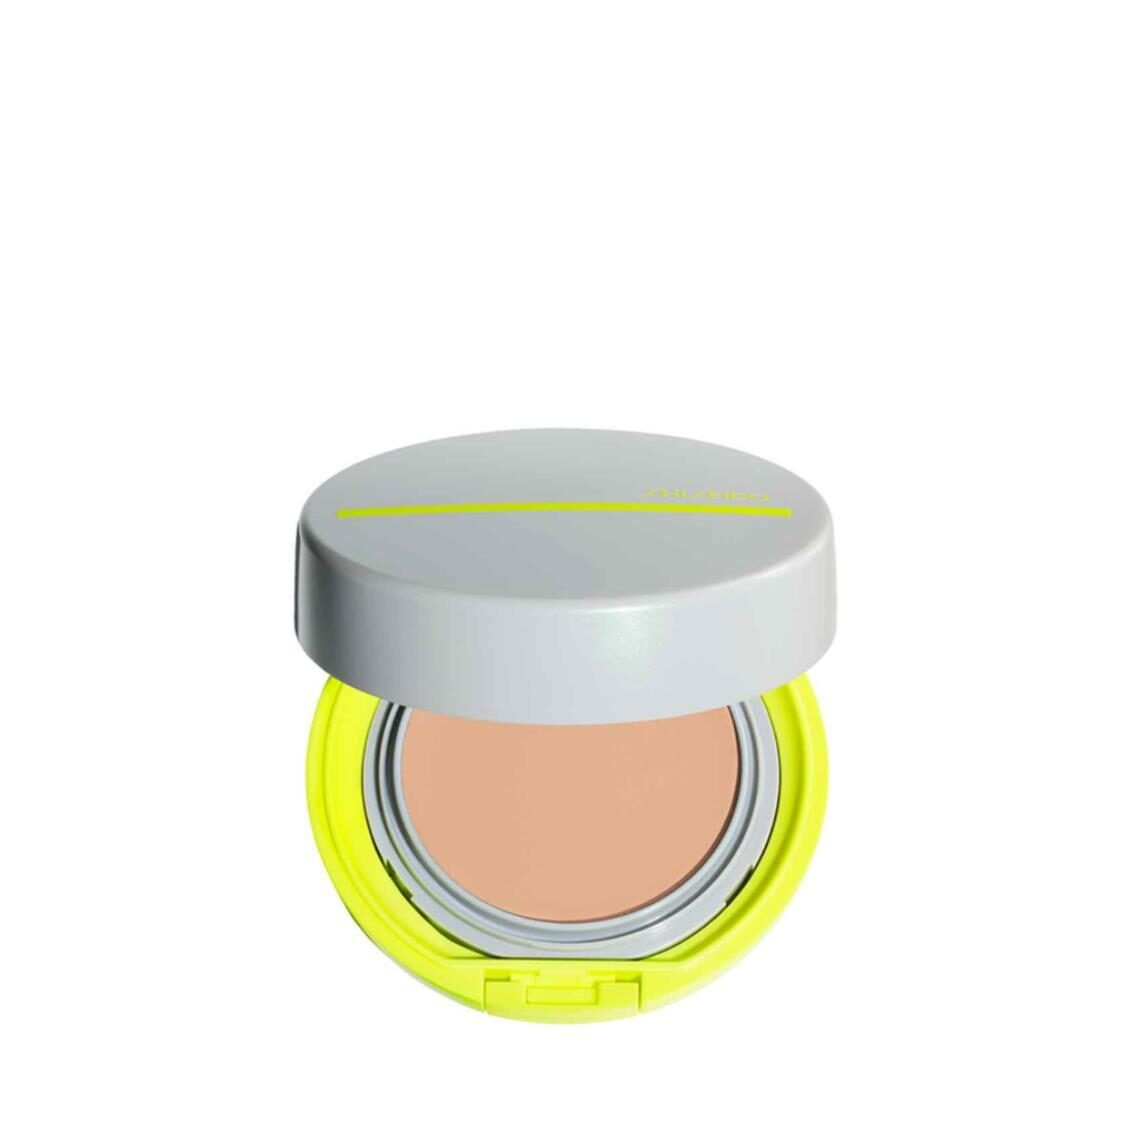 Shiseido Global Suncare HydroBB Compact For Sports in Light Refill